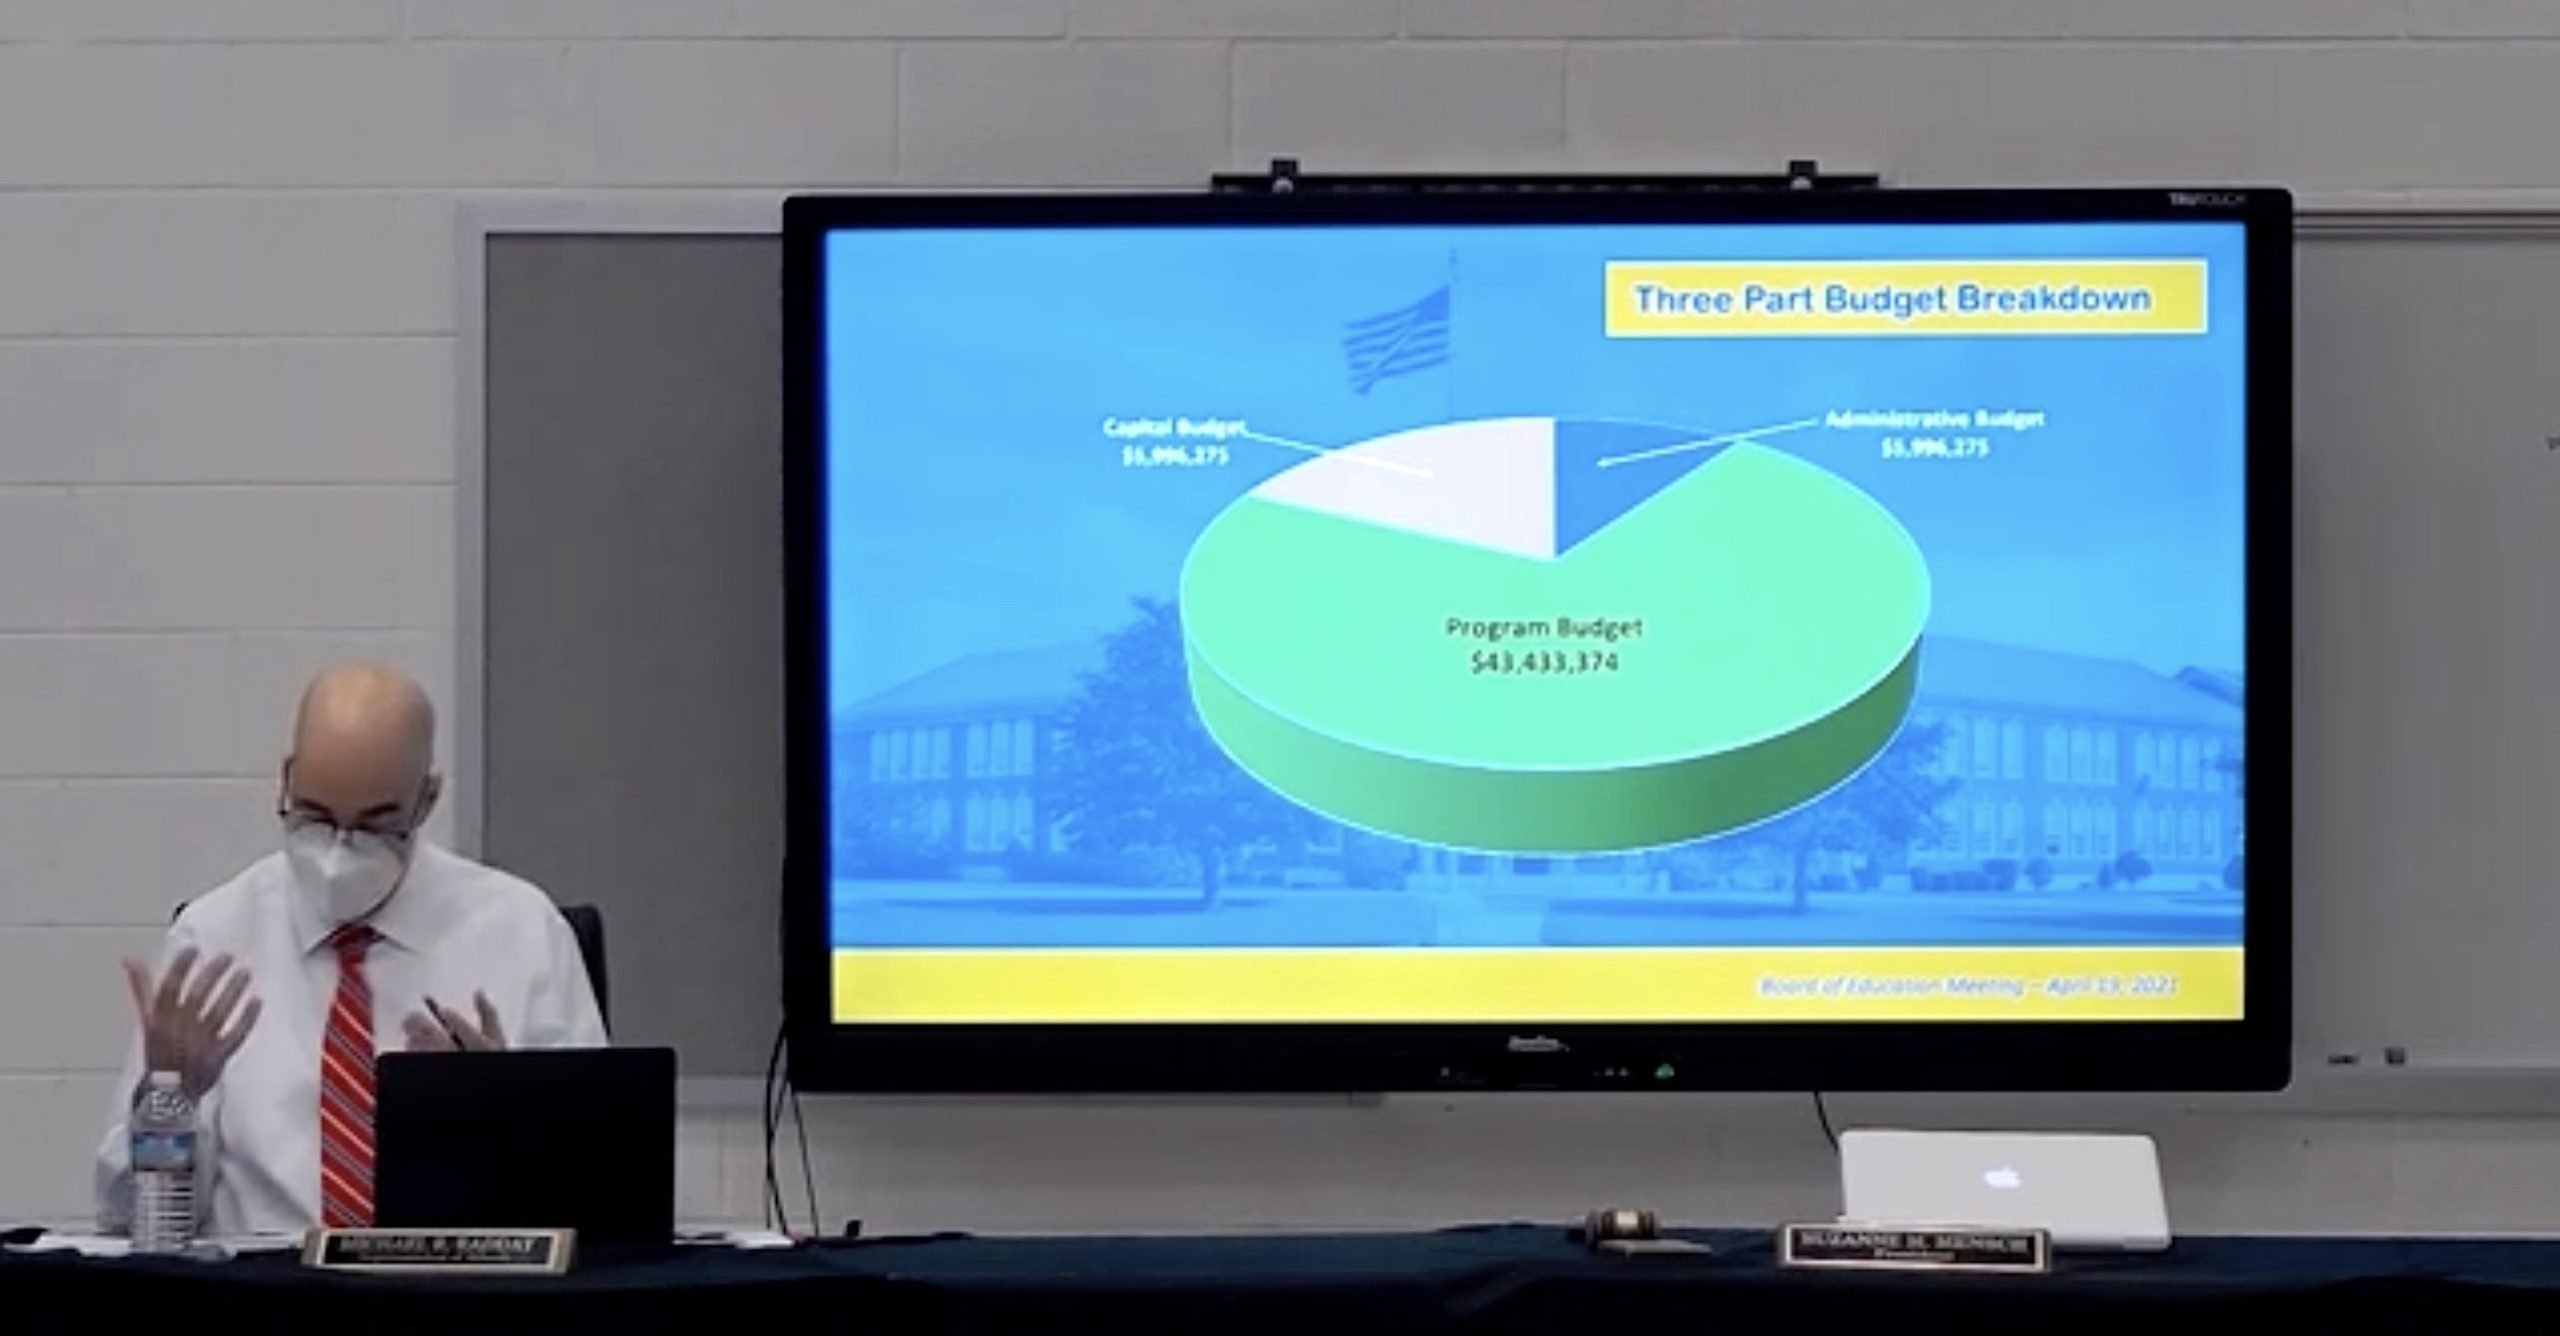 Westhampton Beach Superintendent Michael Radday discusses the three-part budget breakdown during his presentation on the proposed 2021-22 school budget April 19.